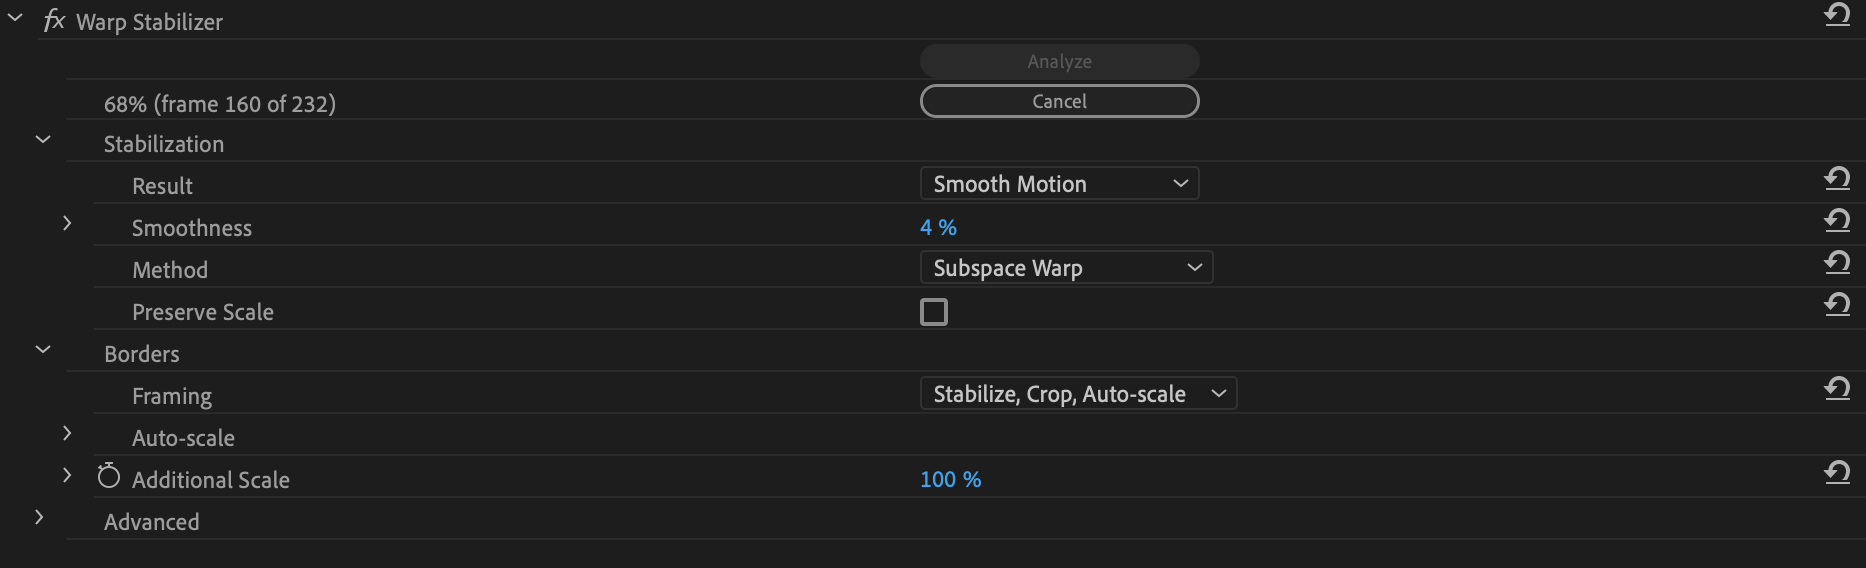 warp stabilizer settings